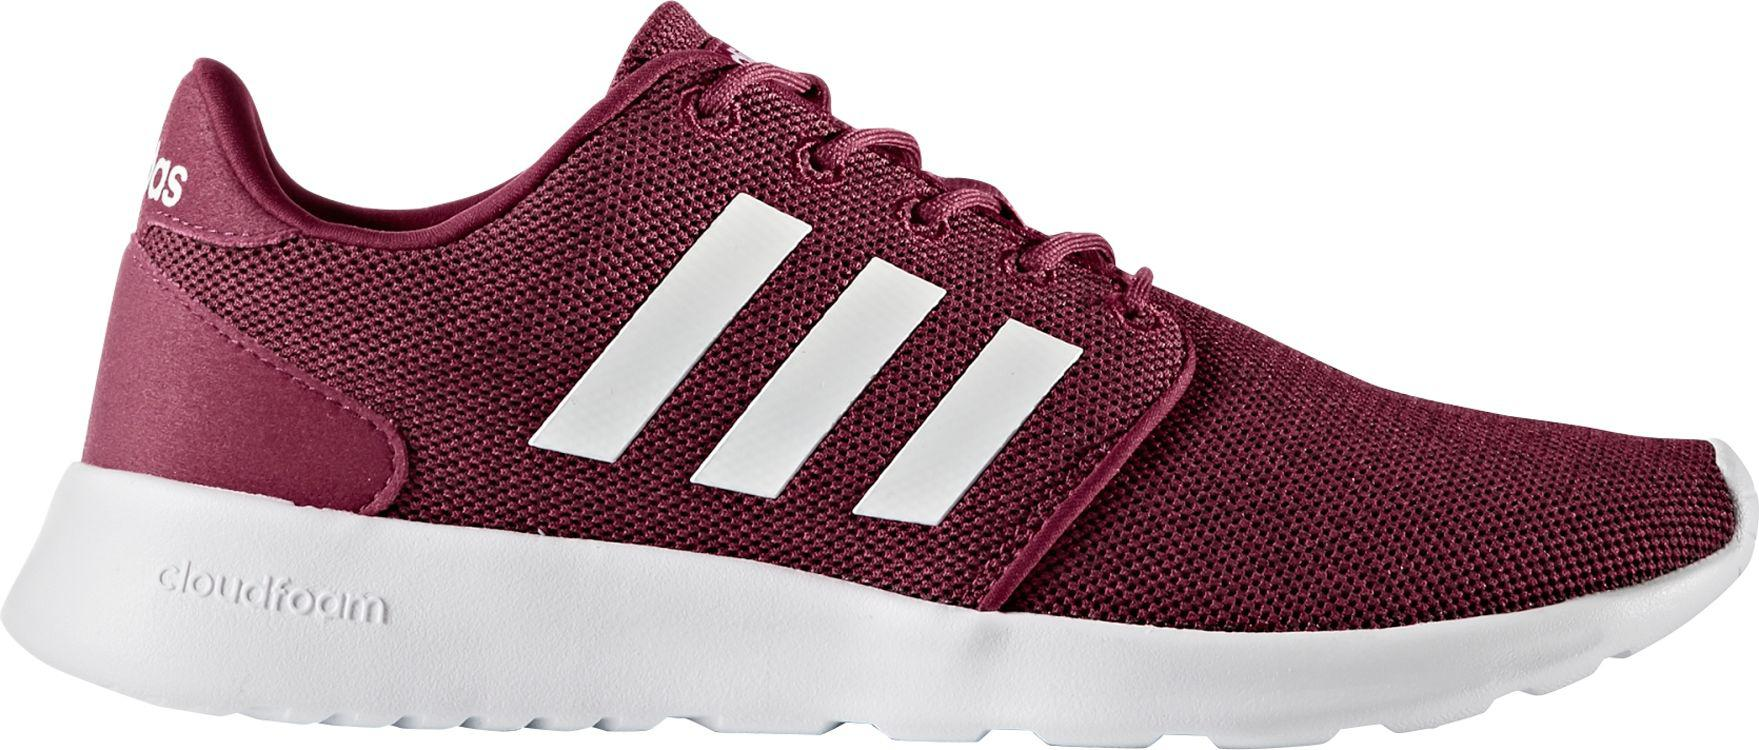 8aa6d358f Lyst - adidas Cloudfoam Qt Racer Shoes in Red